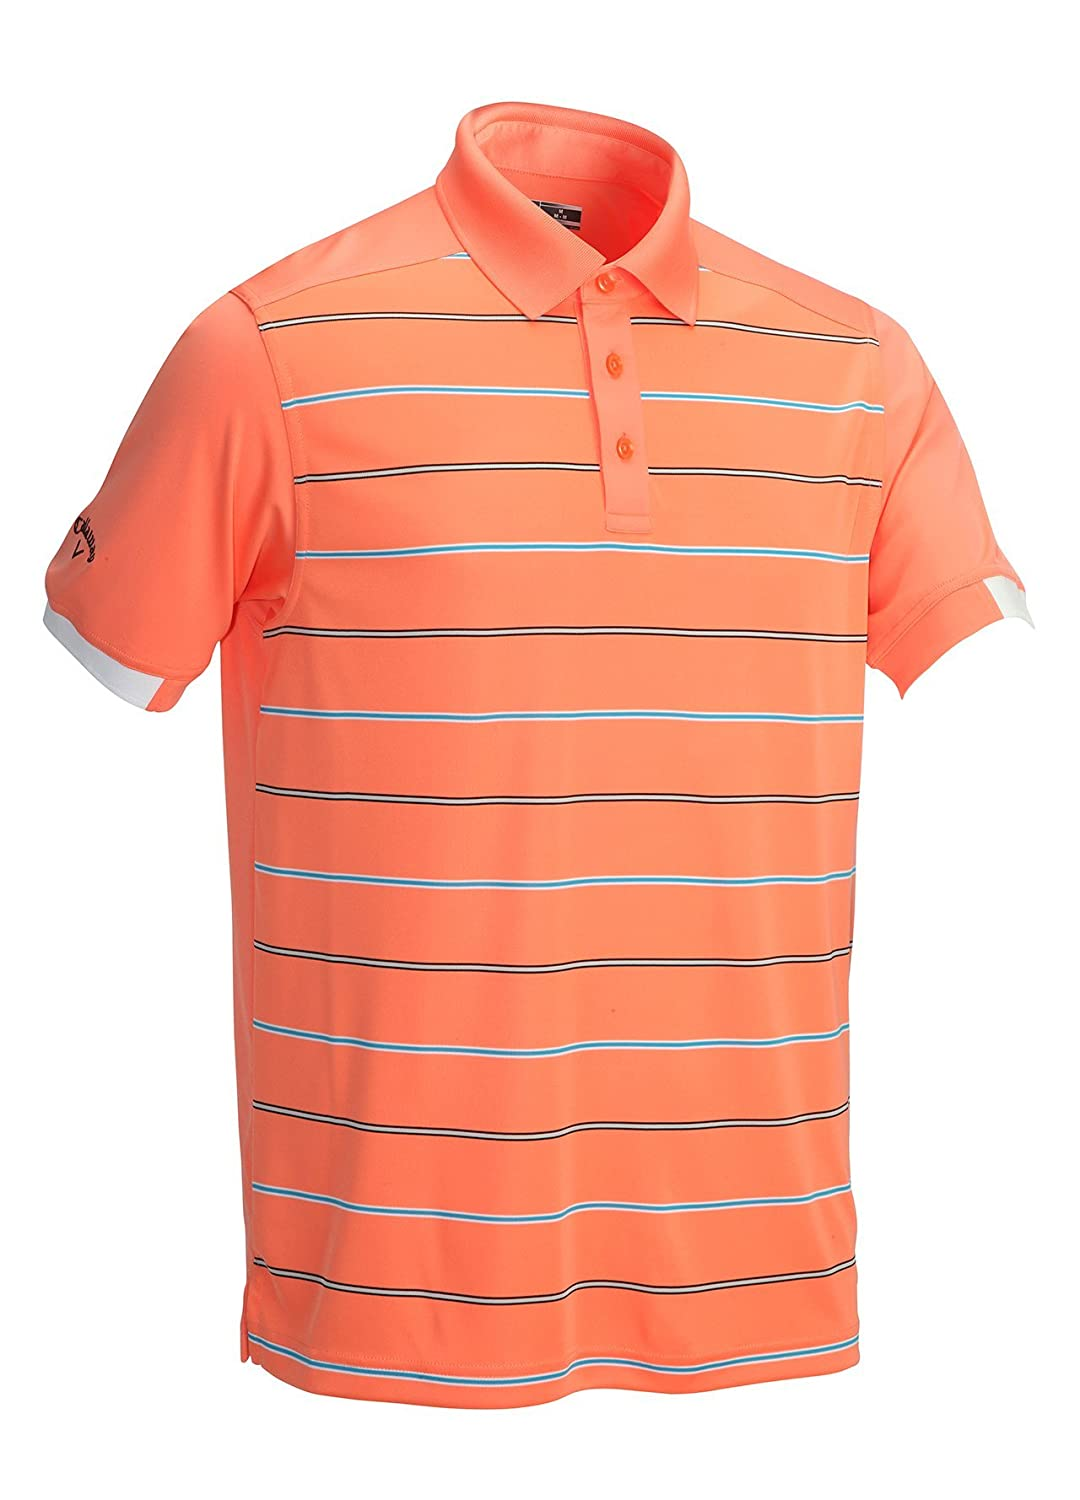 Callaway Erland Golf Polo Shirt черная моль